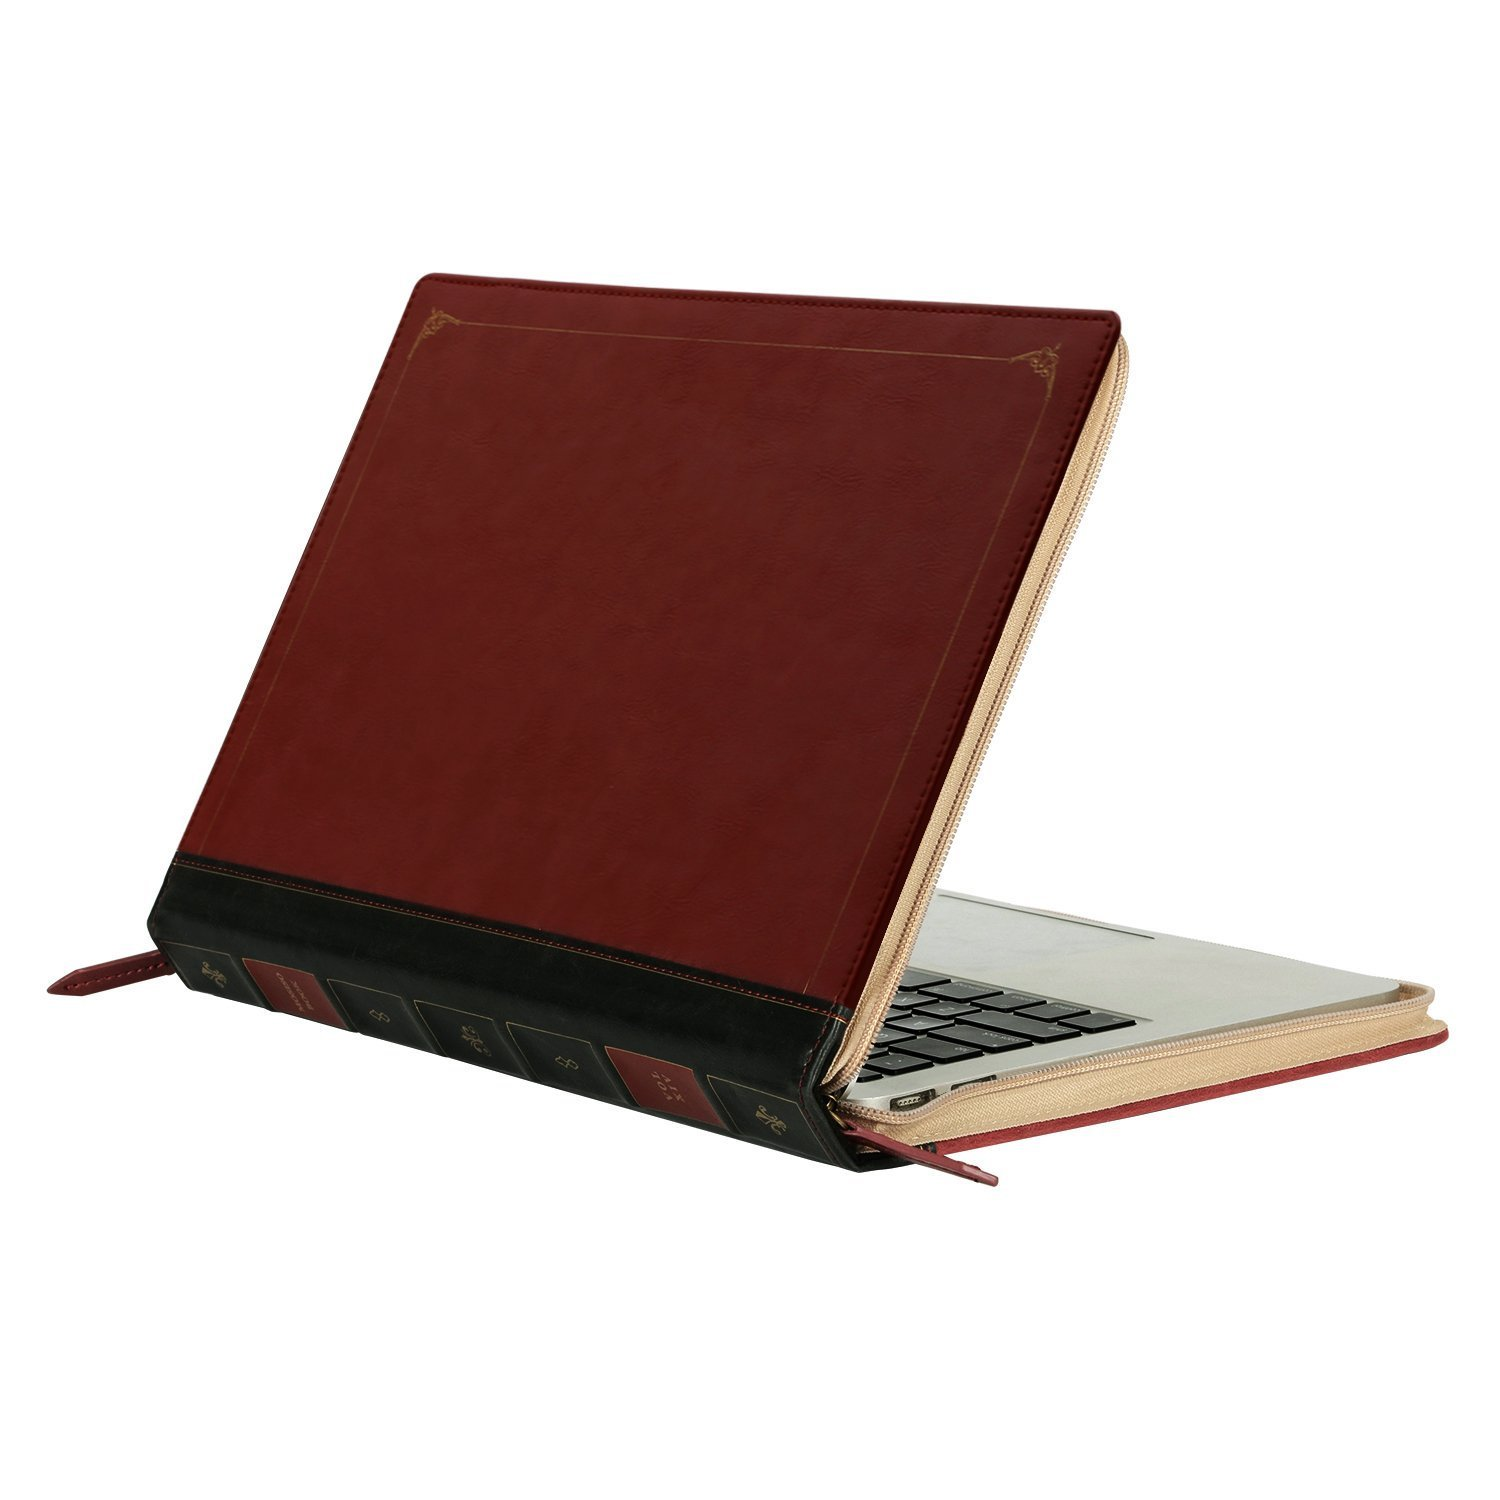 MOSISO PU Leather Zippered Case Only Compatible with Newest 2018 2017 2016 MacBook Pro 13 Inch with/without Touch Bar A1989 / A1706 / A1708, Vintage Classic Premium Book Sleeve Cover, Wine Red